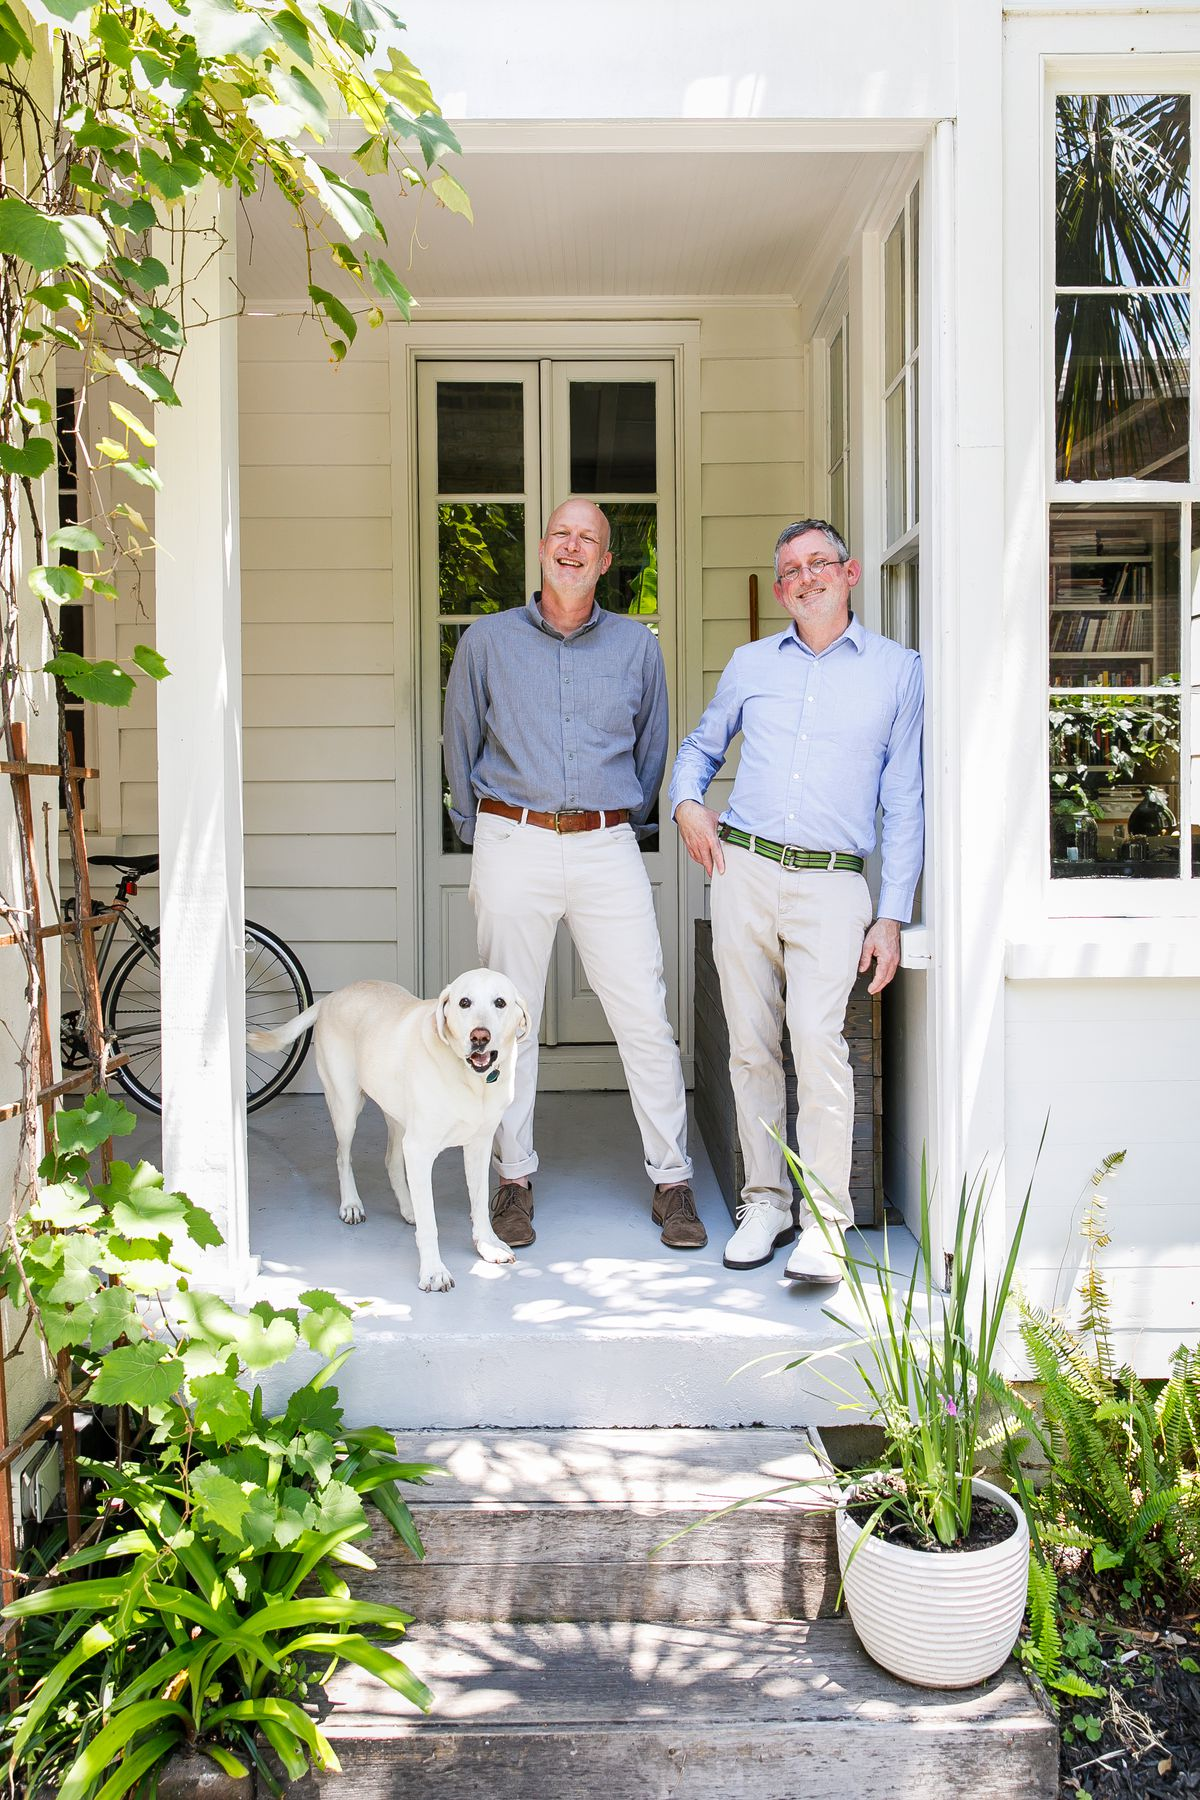 The homeowners and their white dog stand on the porch of their house.